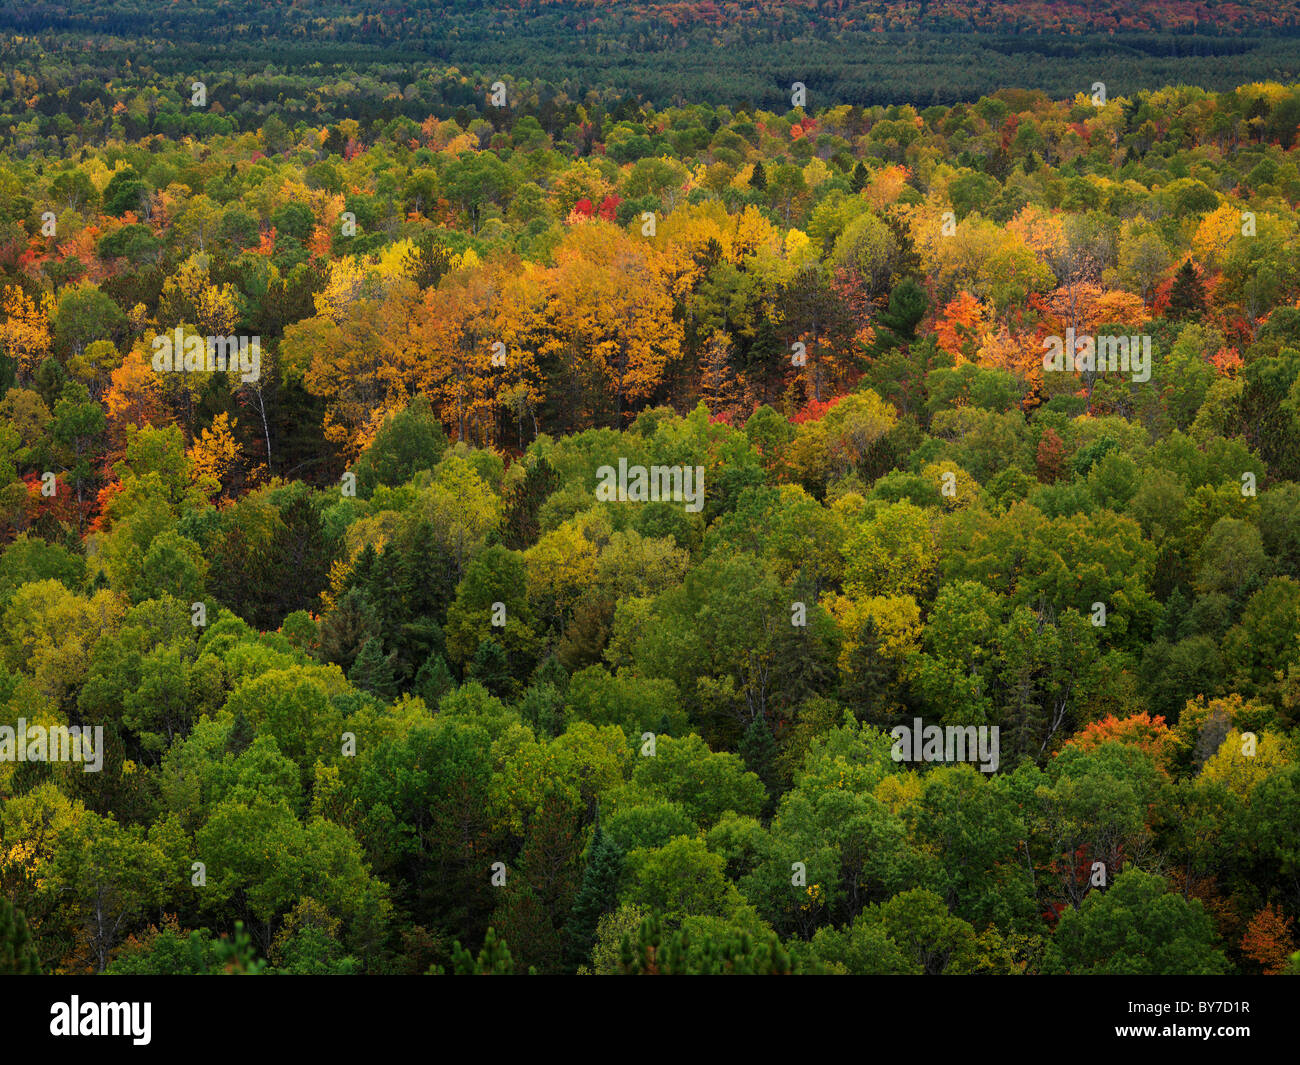 Aerial view of colorful autumn trees. Fall nature scenery. Algonquin ...